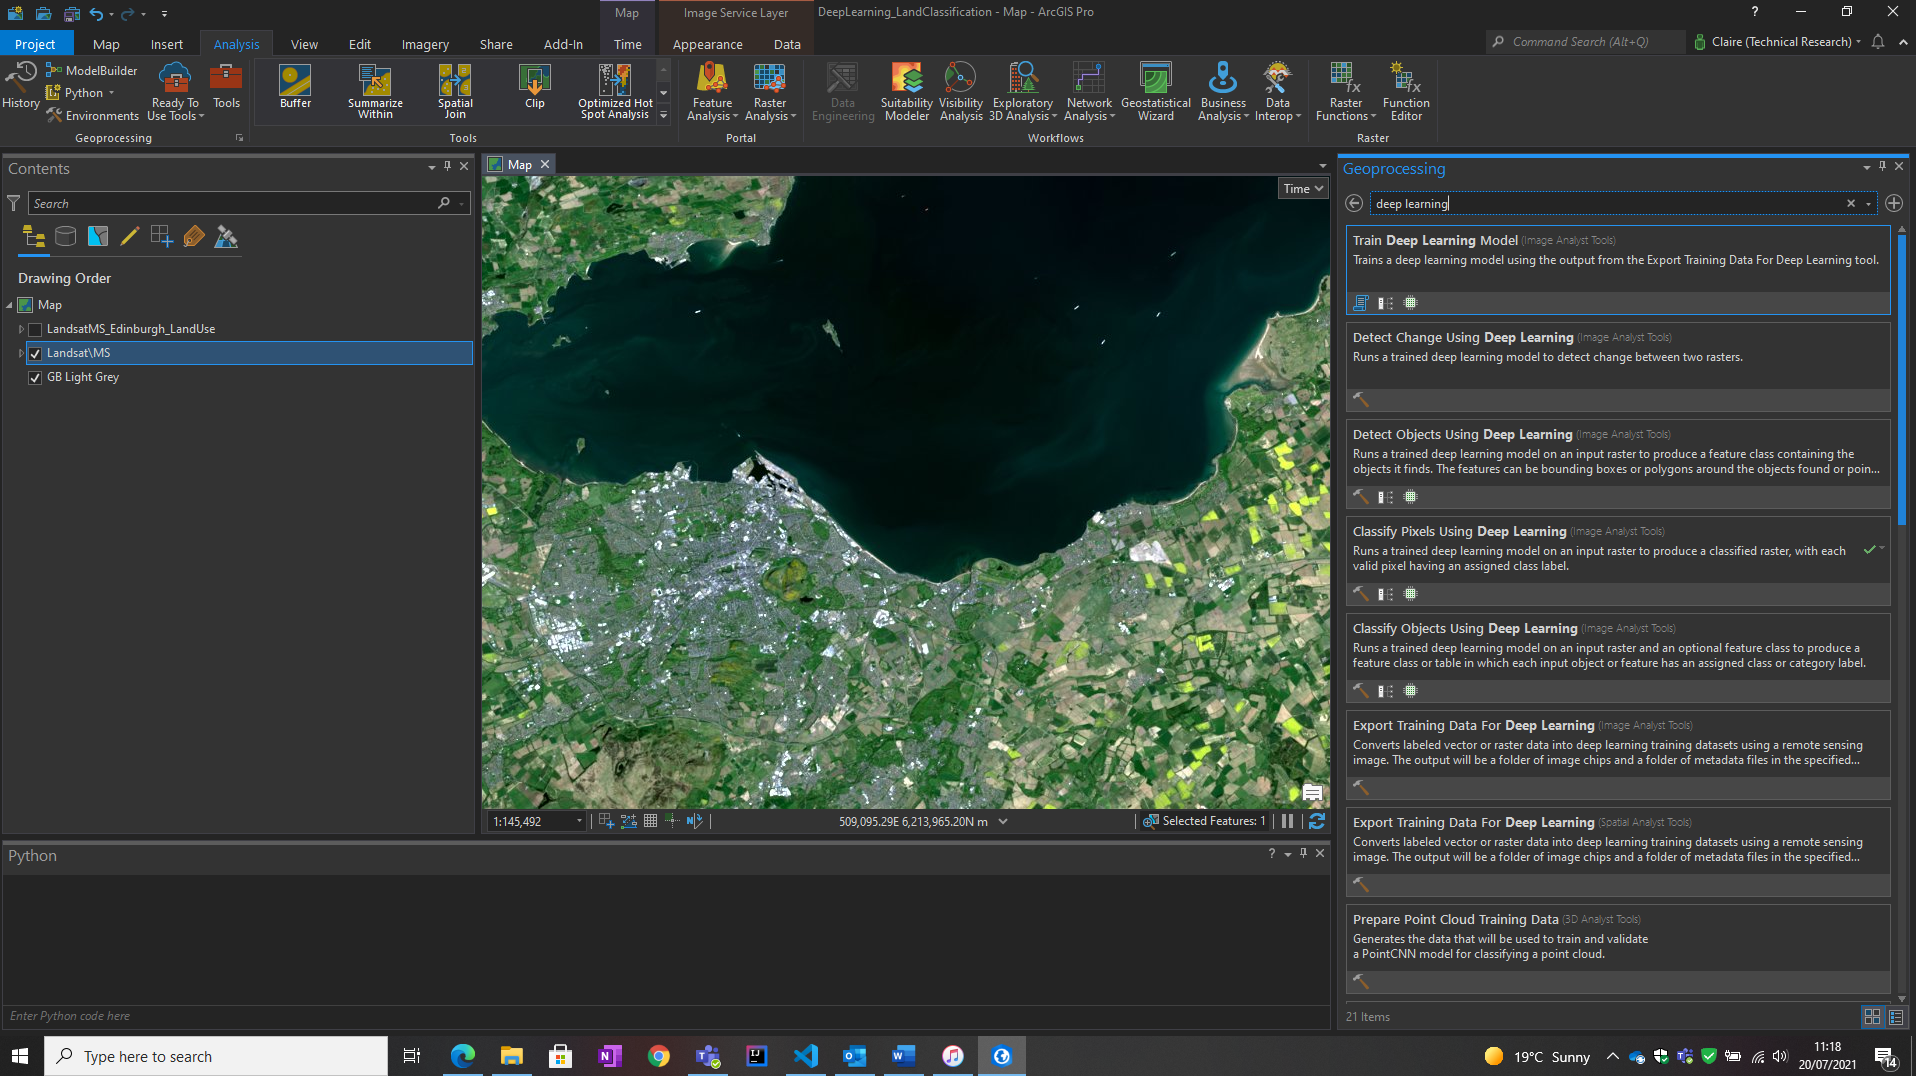 Running a Deep Learning tool in ArcGIS Pro